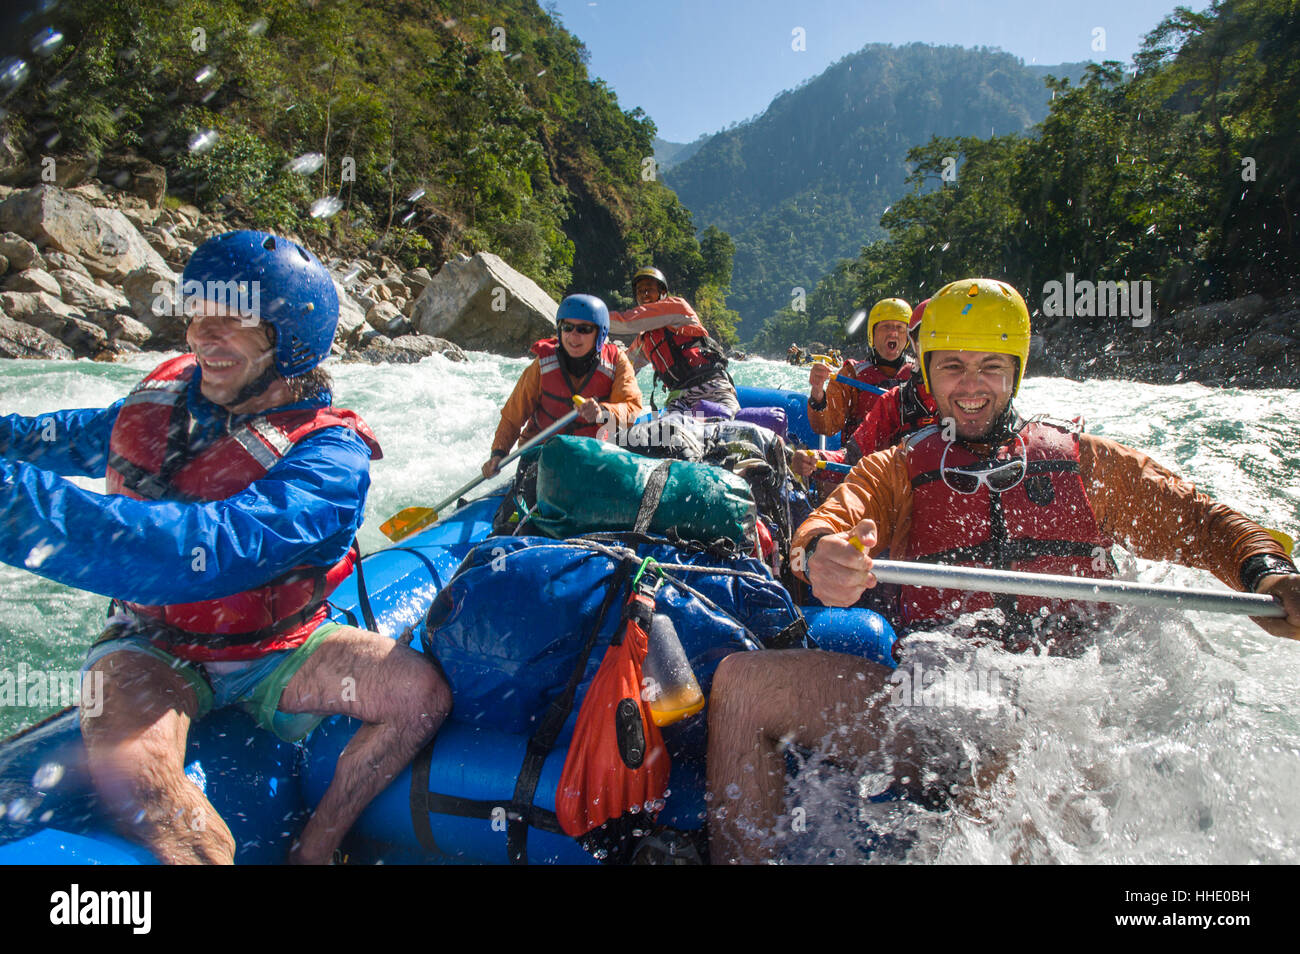 Rafters get splashed as they go through some big rapids on the Karnali River, west Nepal - Stock Image